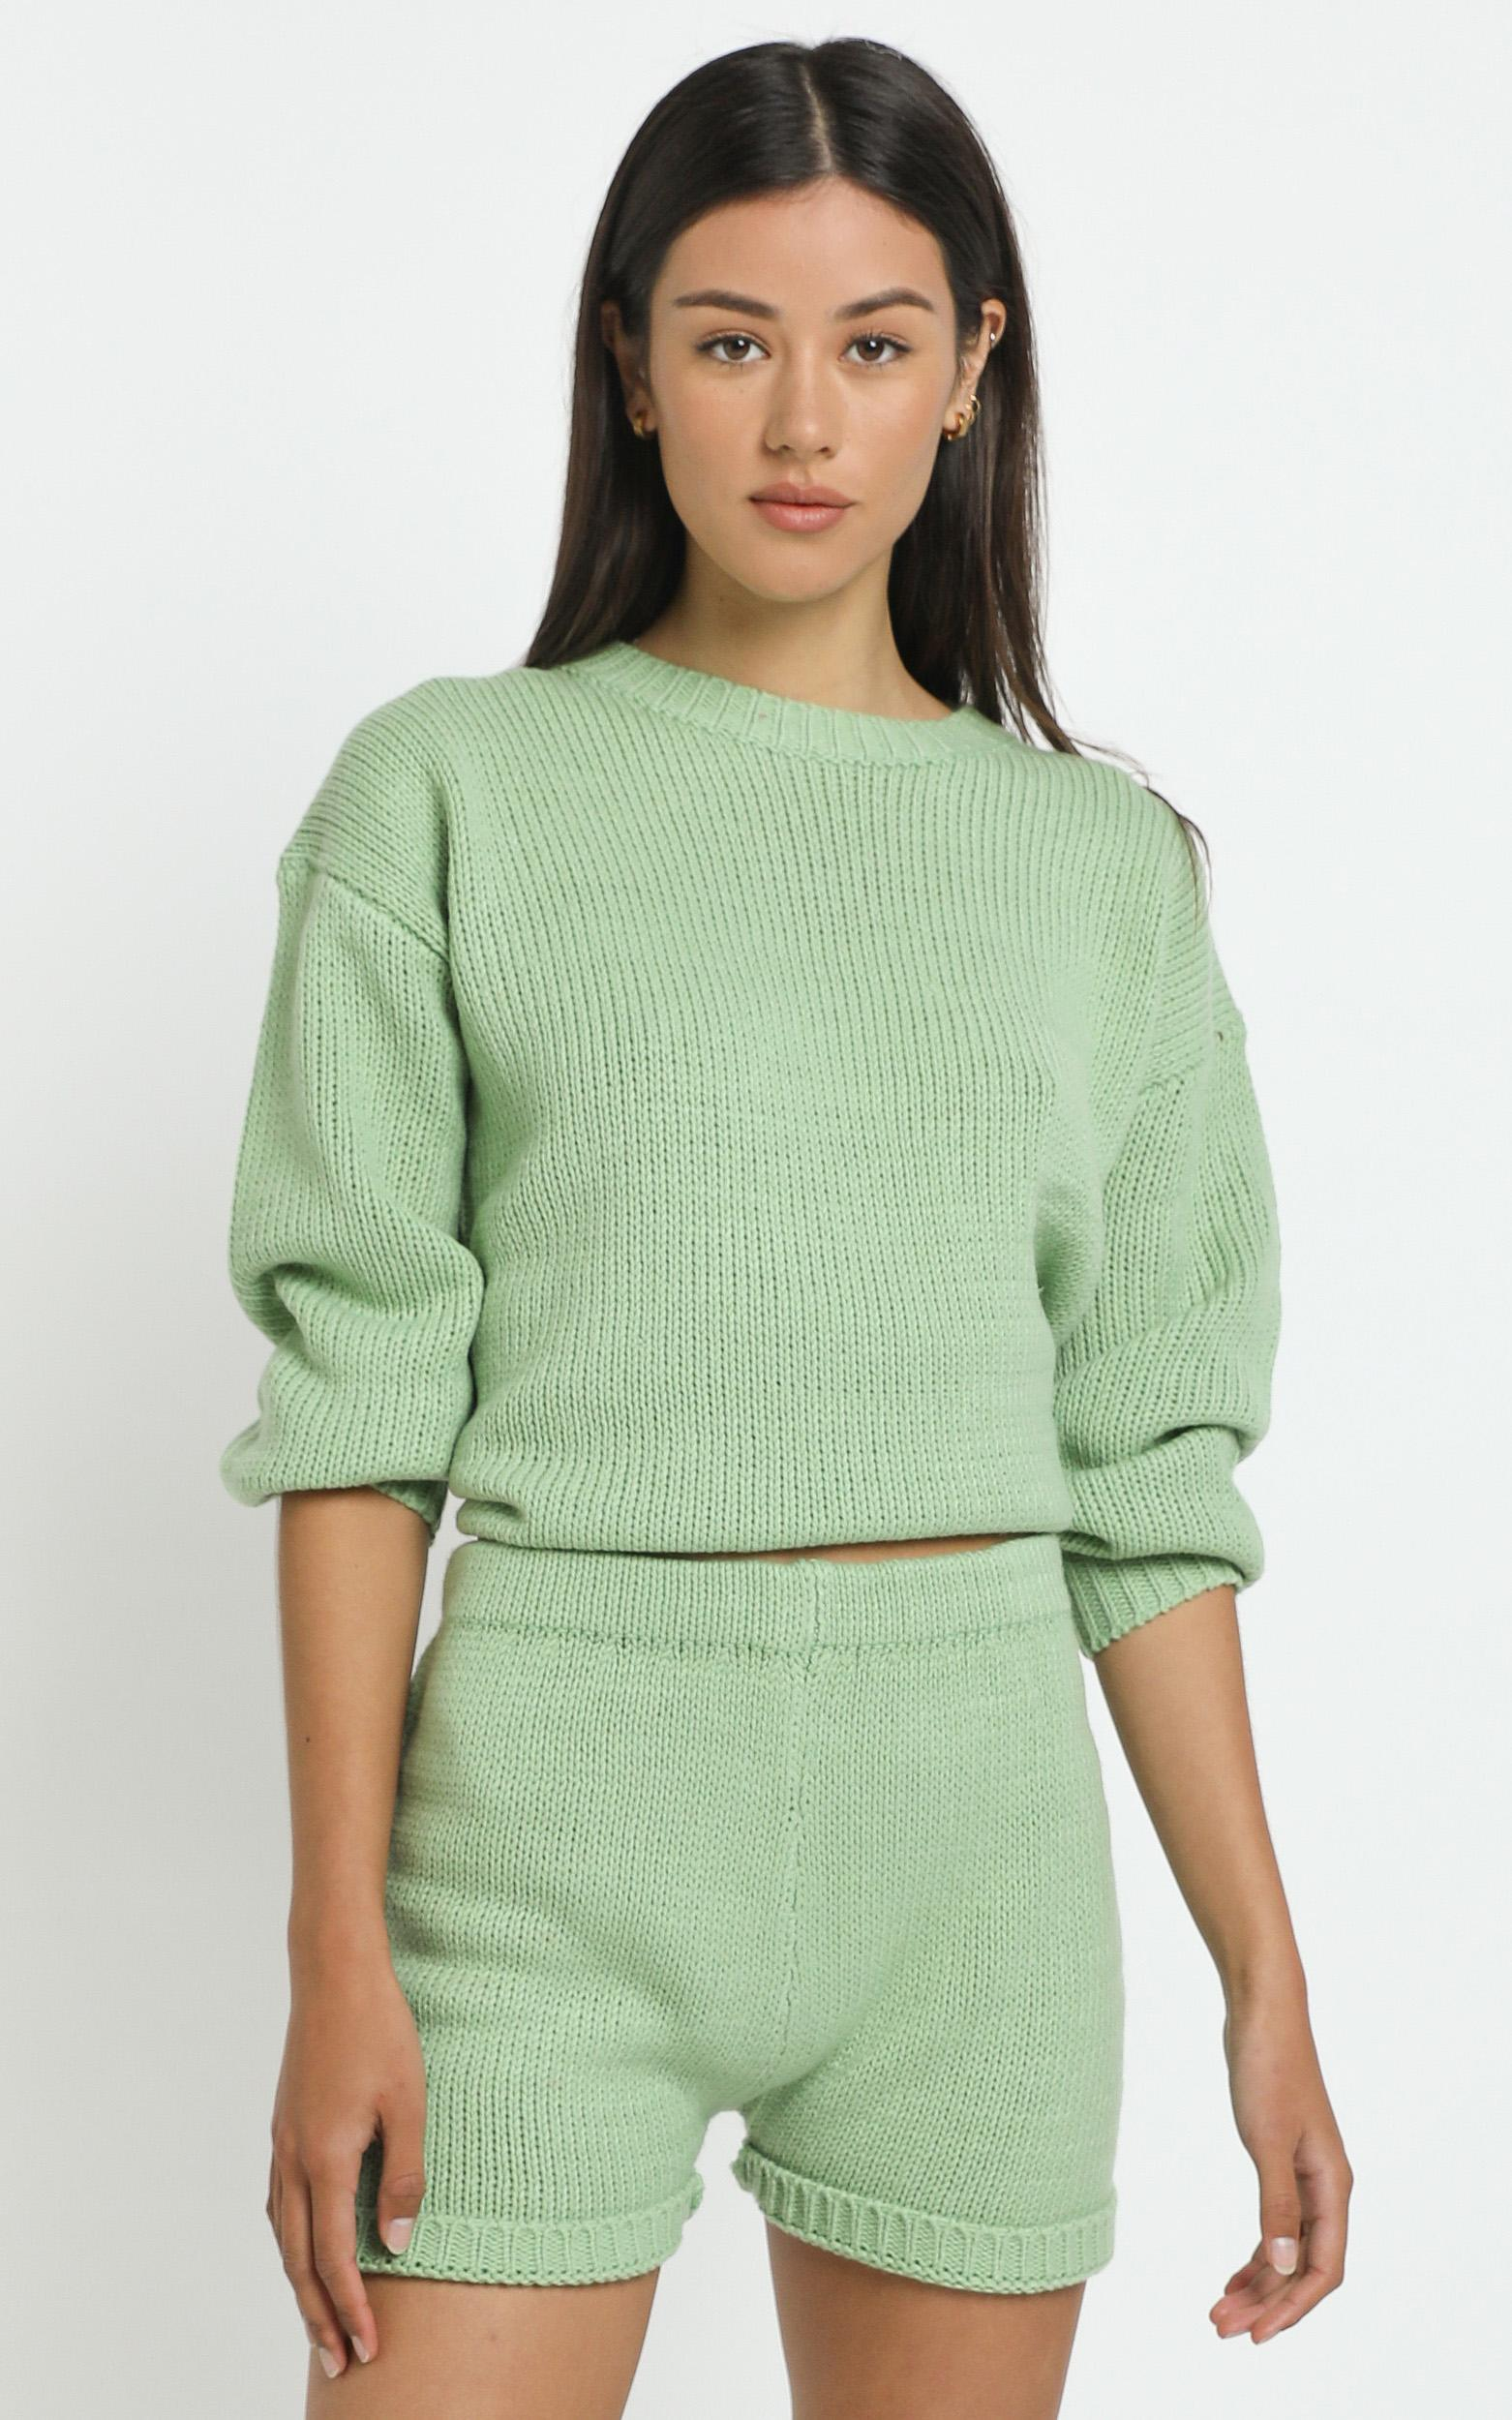 Becca Knit Shorts in Green - 12 (L), Green, hi-res image number null